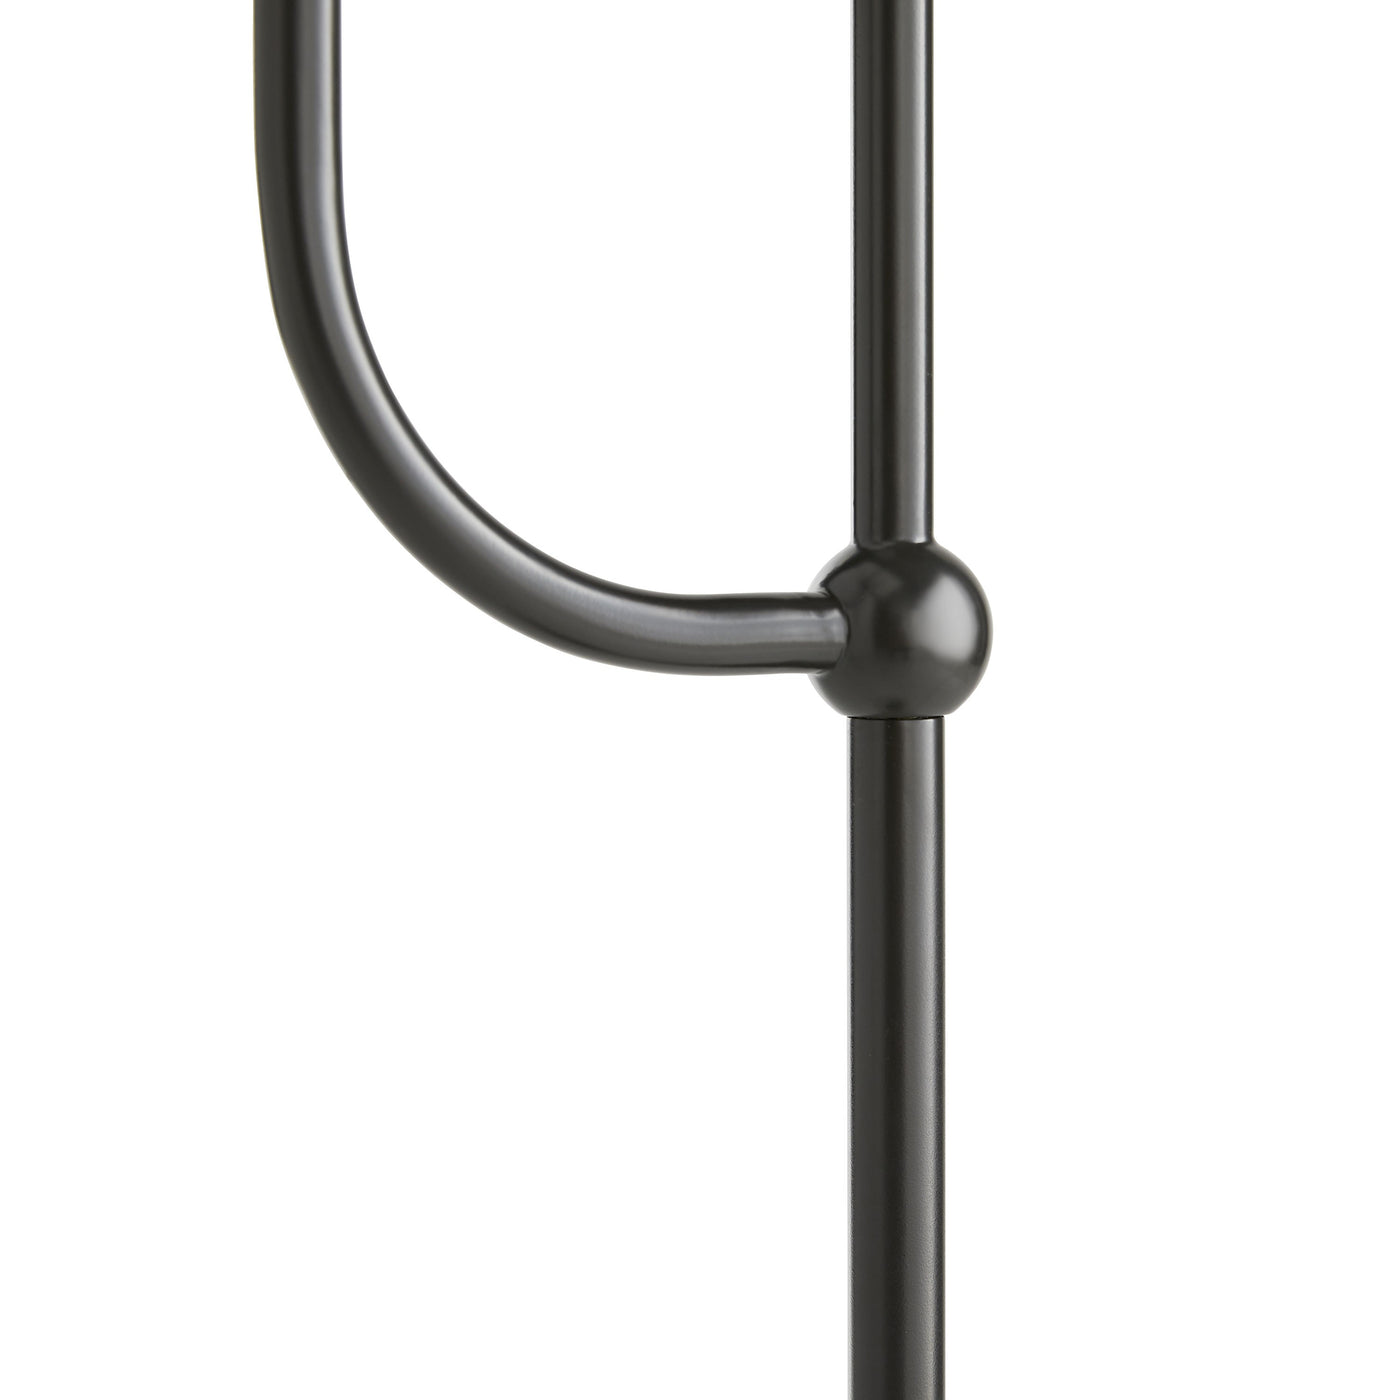 arteriors dorchester floor lamp bronze detail